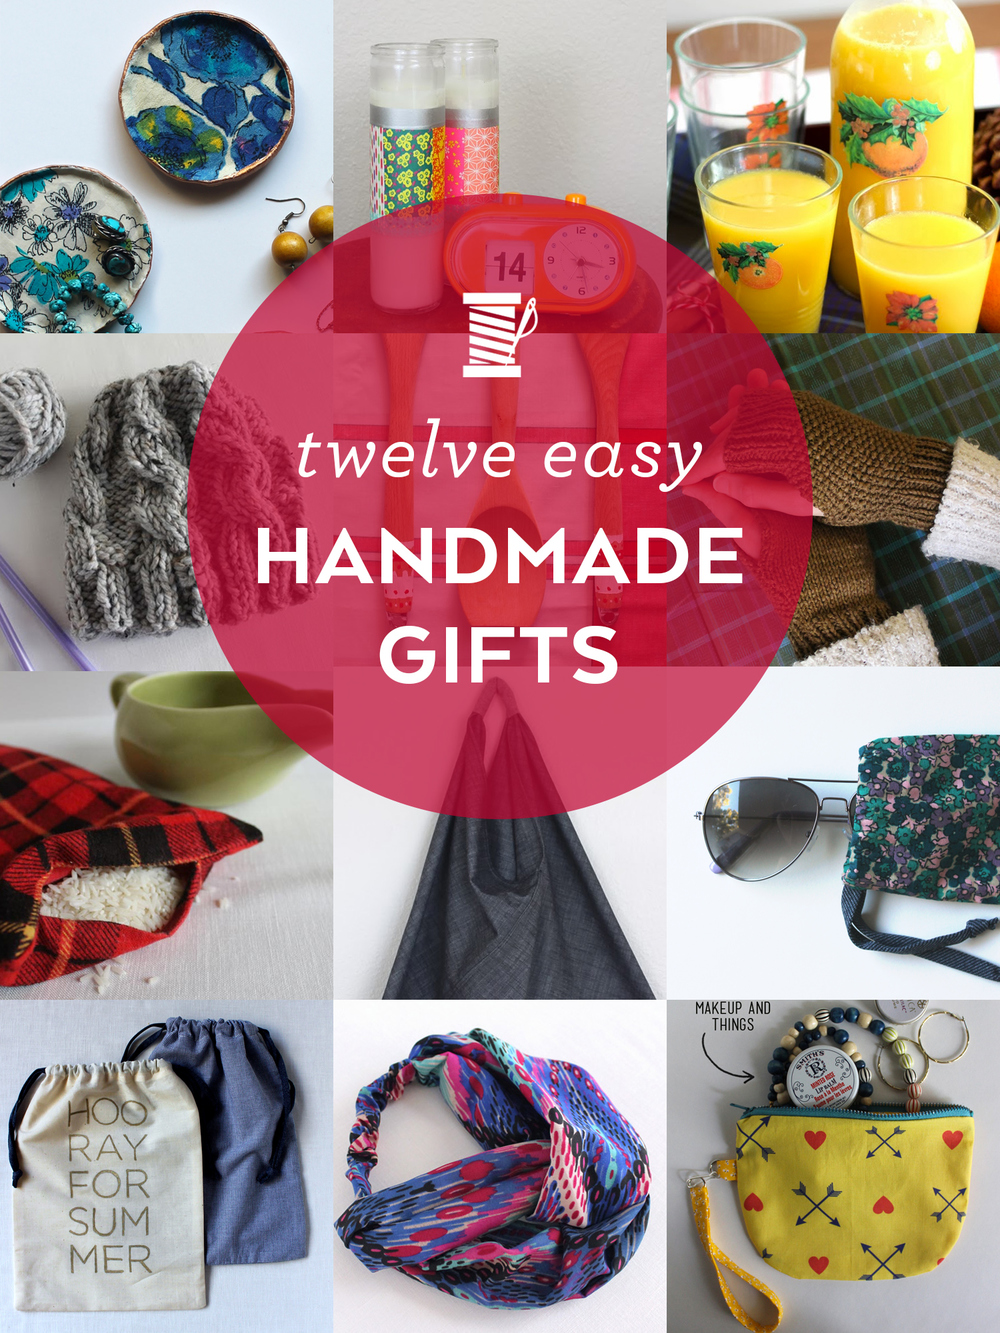 12 Easy Handmade Holiday Gifts | Sew DIY